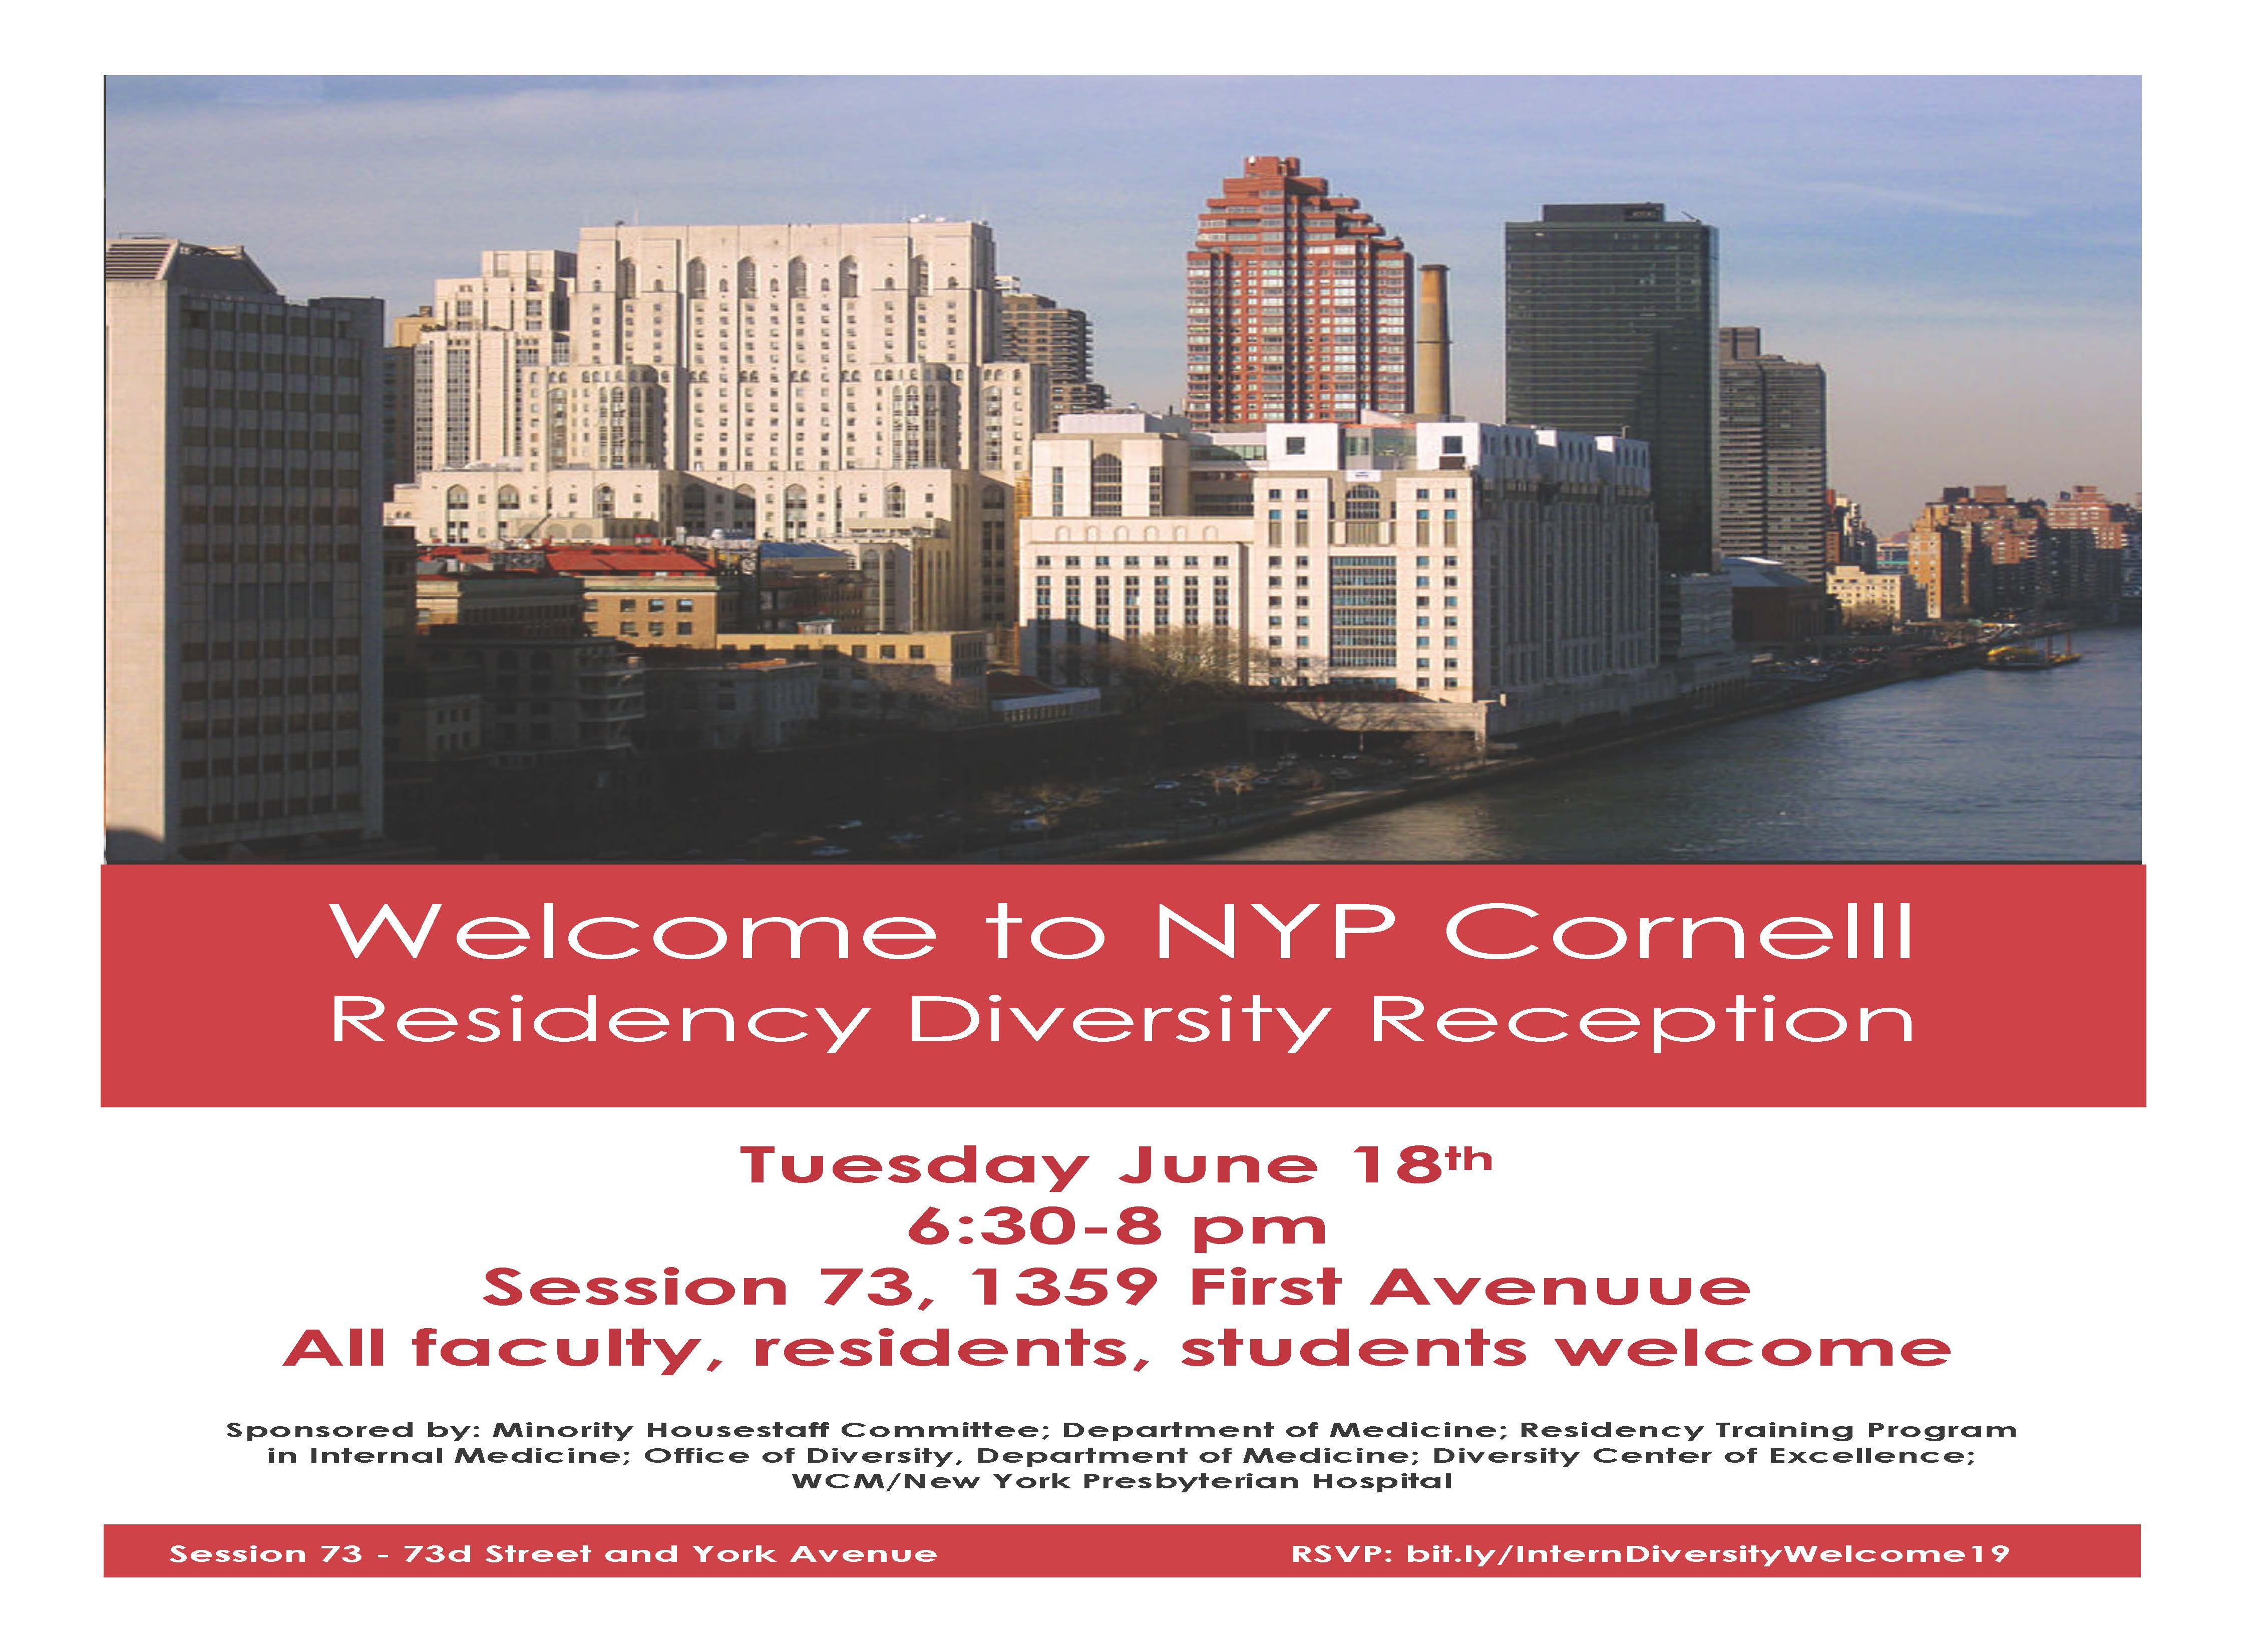 Welcome to NYP Cornell Residency Diversity Reception - Cornell